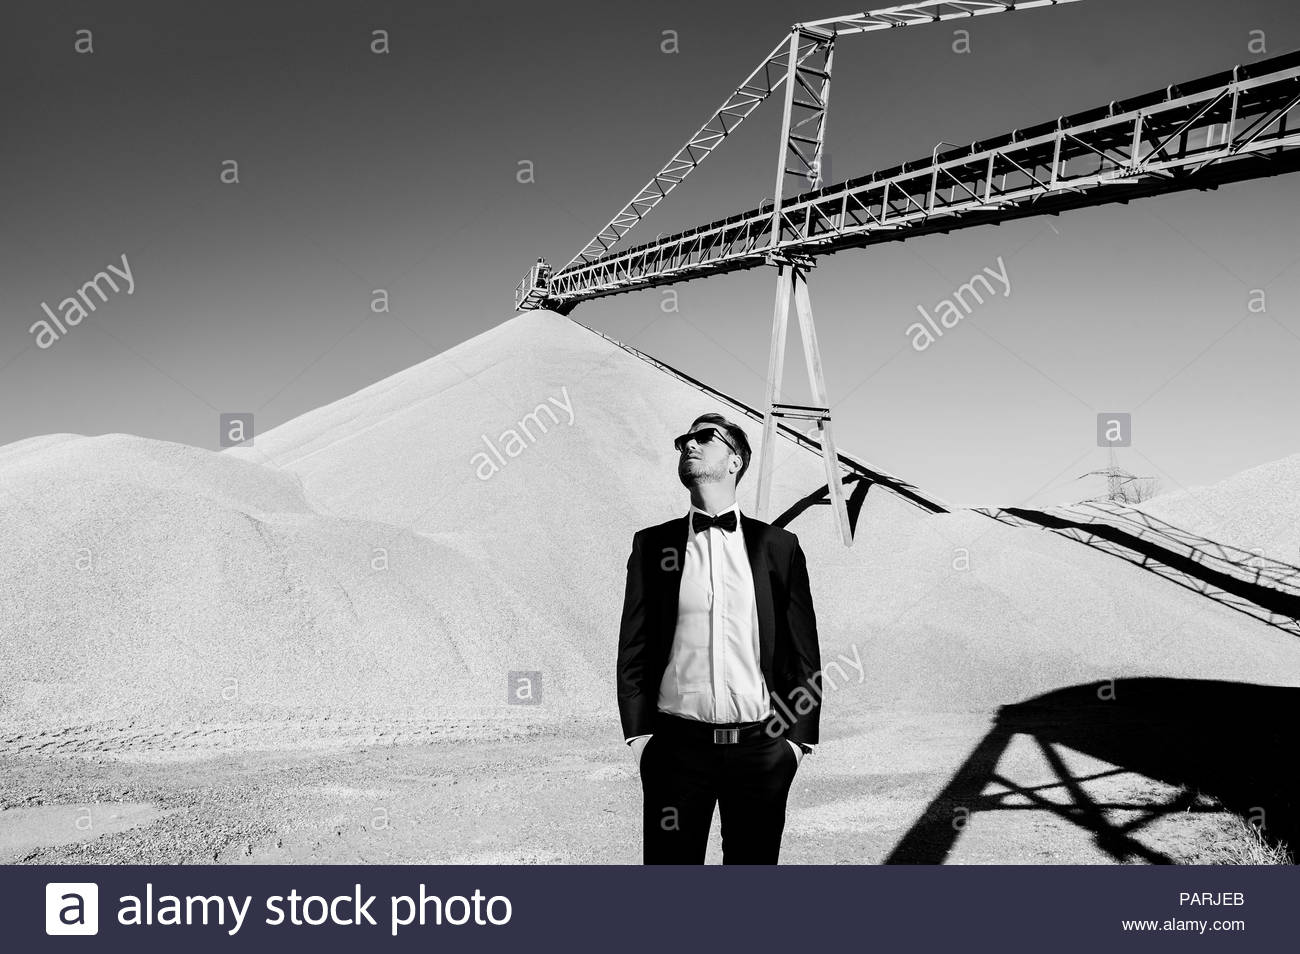 Portrait of young man standing at a construction site - Stock Image